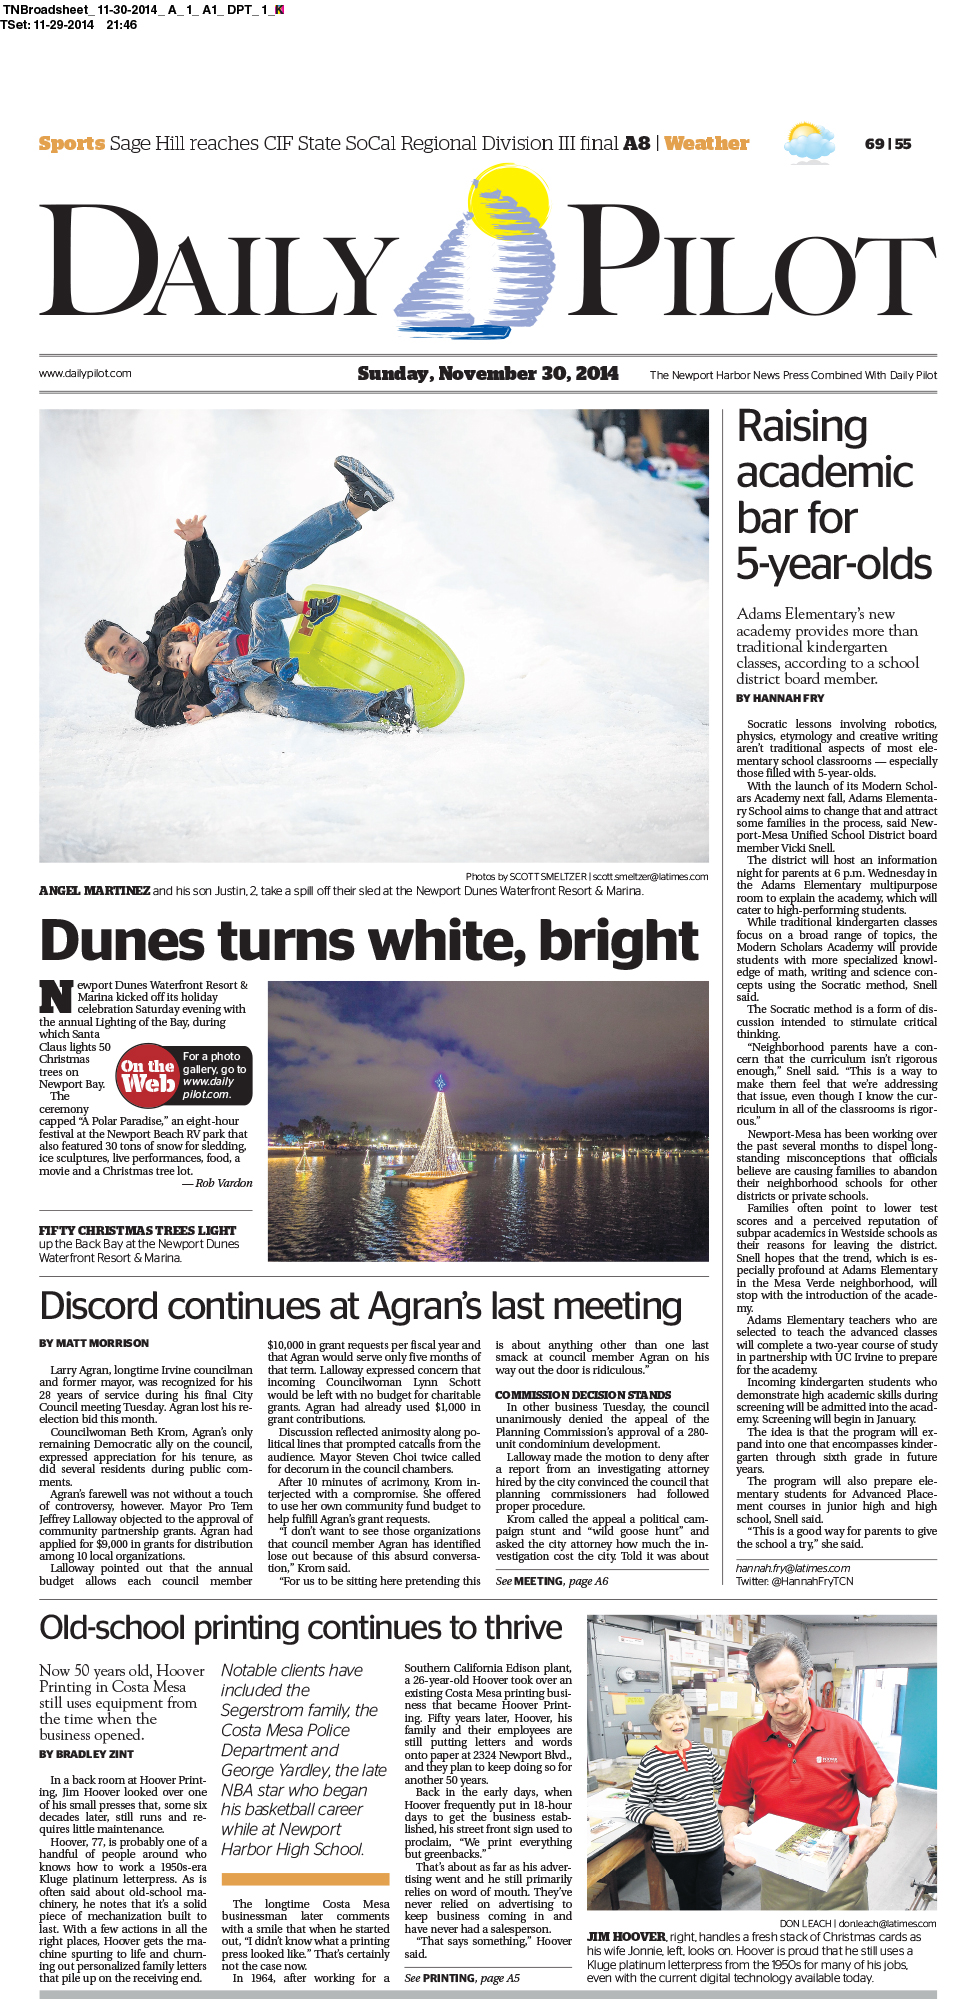 Daily Pilot front cover, Nov. 30, 2014